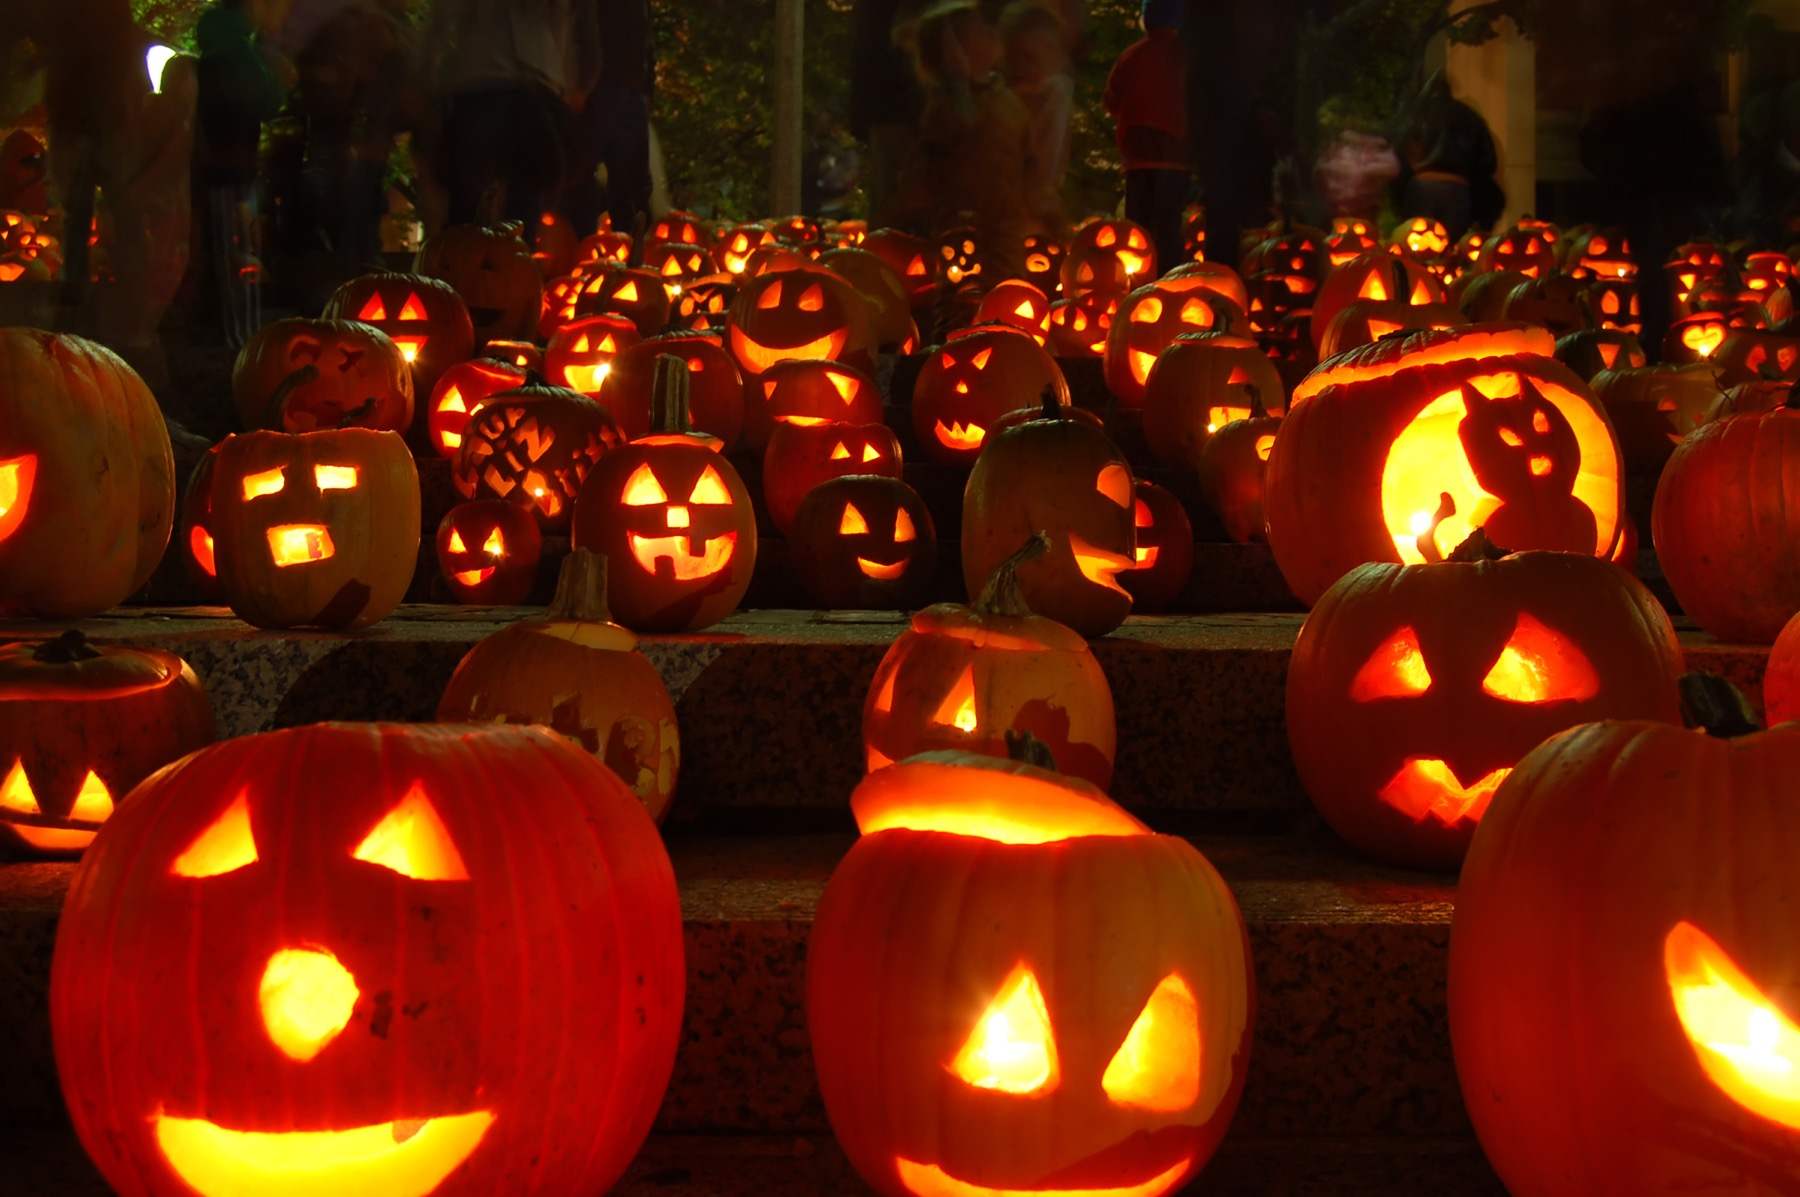 Chicago Il Halloween Events 2020 Halloween events in Chicago: Top things to do 2020 | Choose Chicago